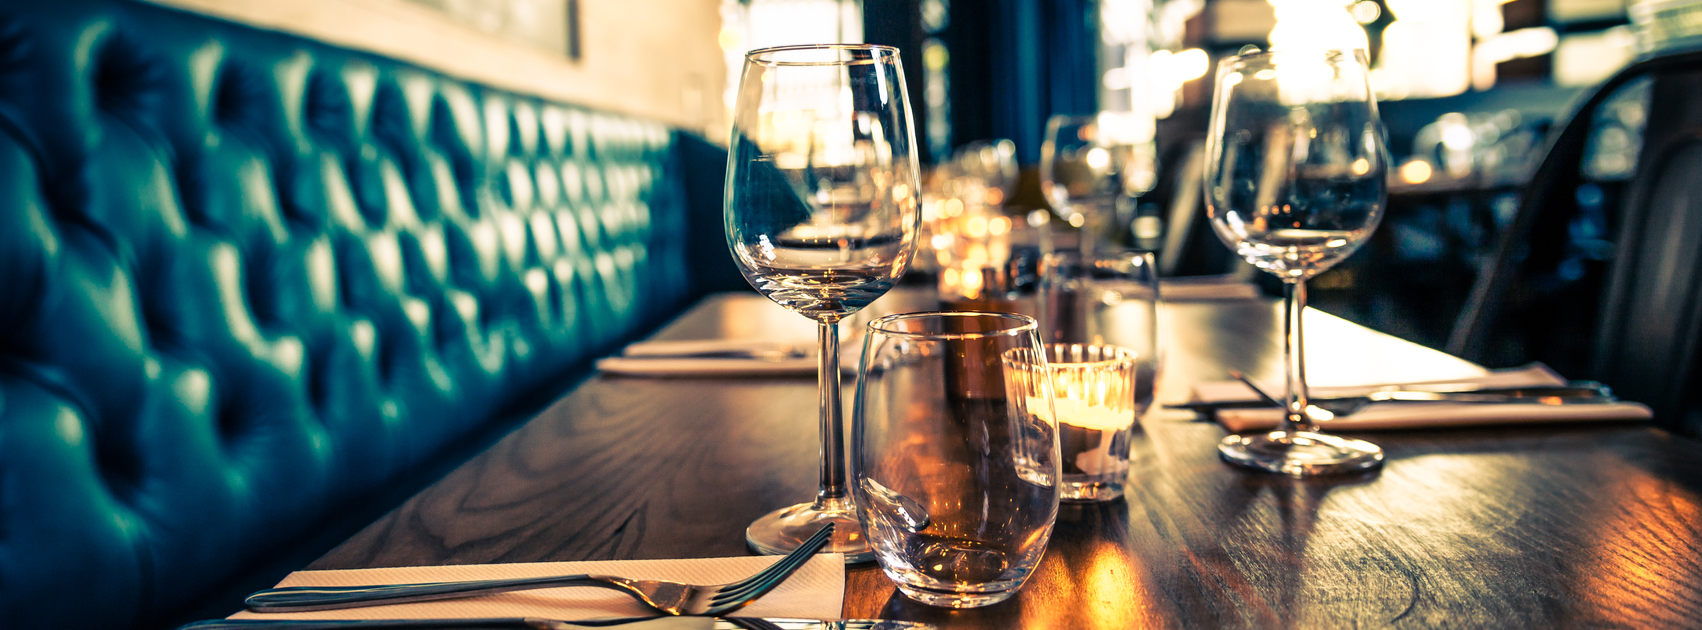 restaurant bar catering insurance - ProHost USA | Restaurant, Wine Bar & Catering Insurance